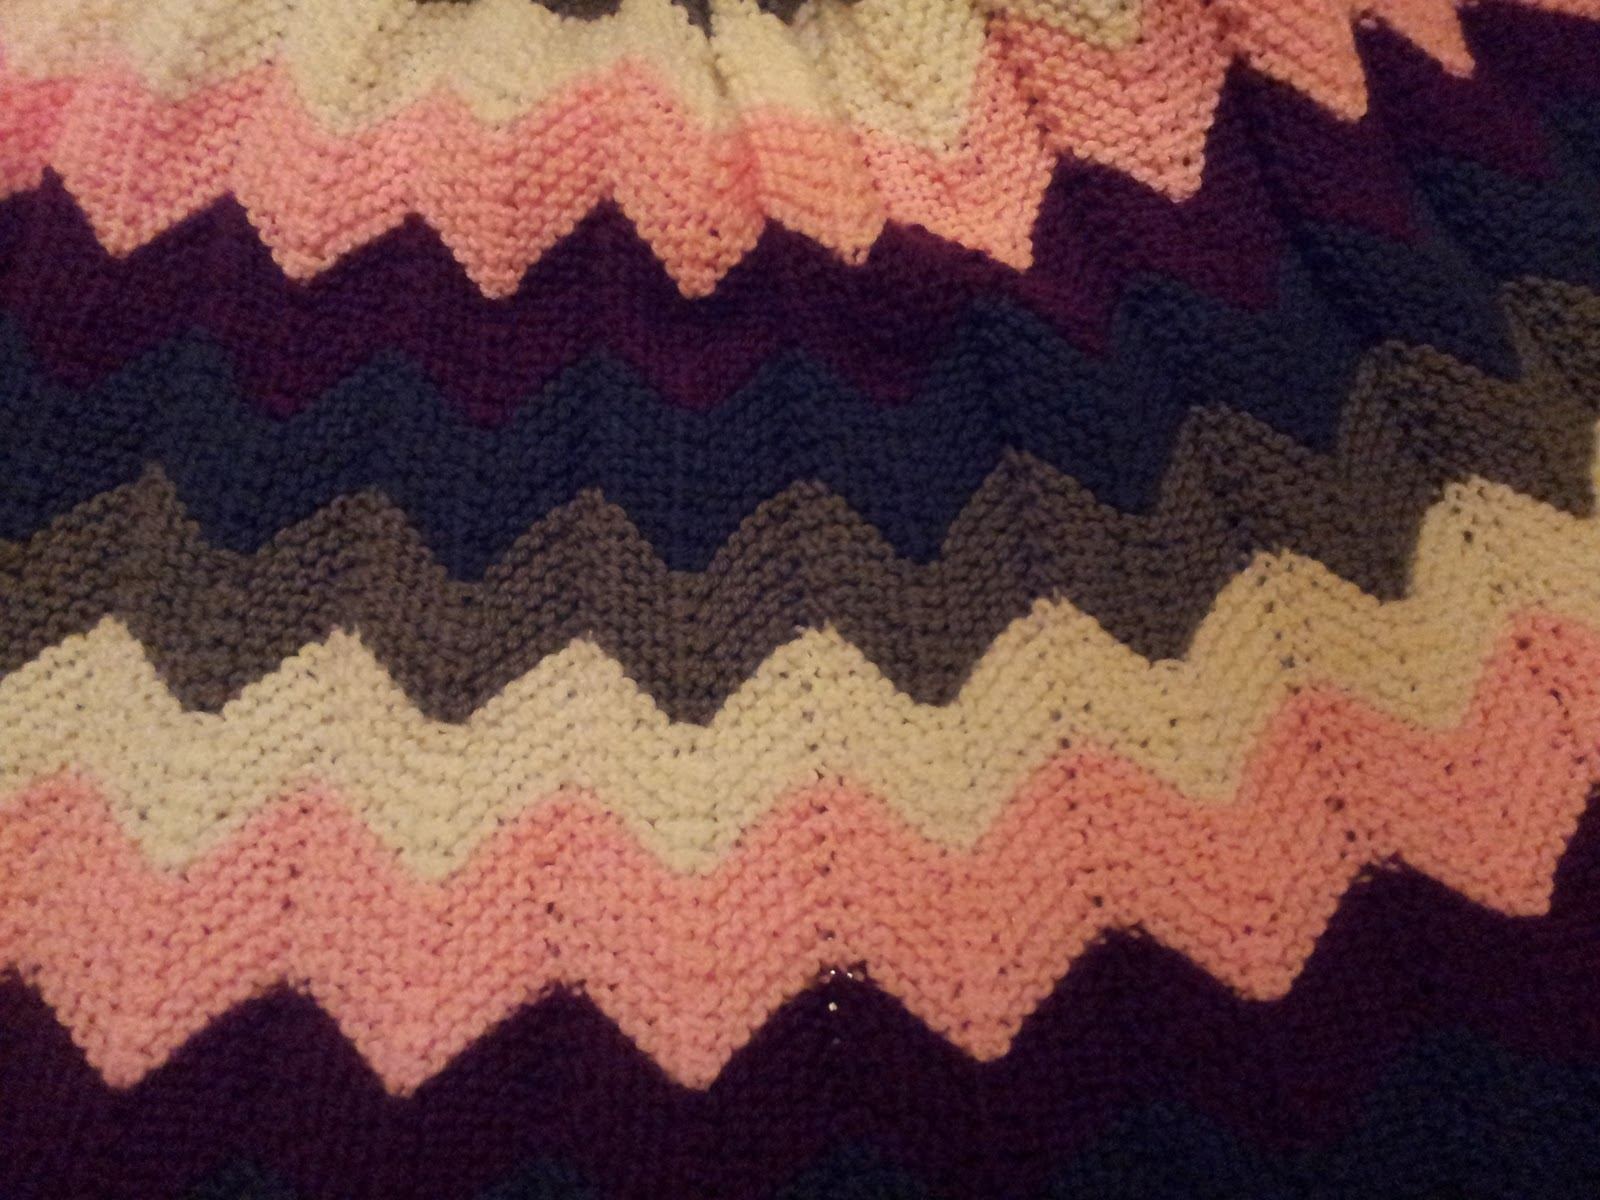 Indie Knitting Patterns : Knitted Afghan Patterns Ripple images